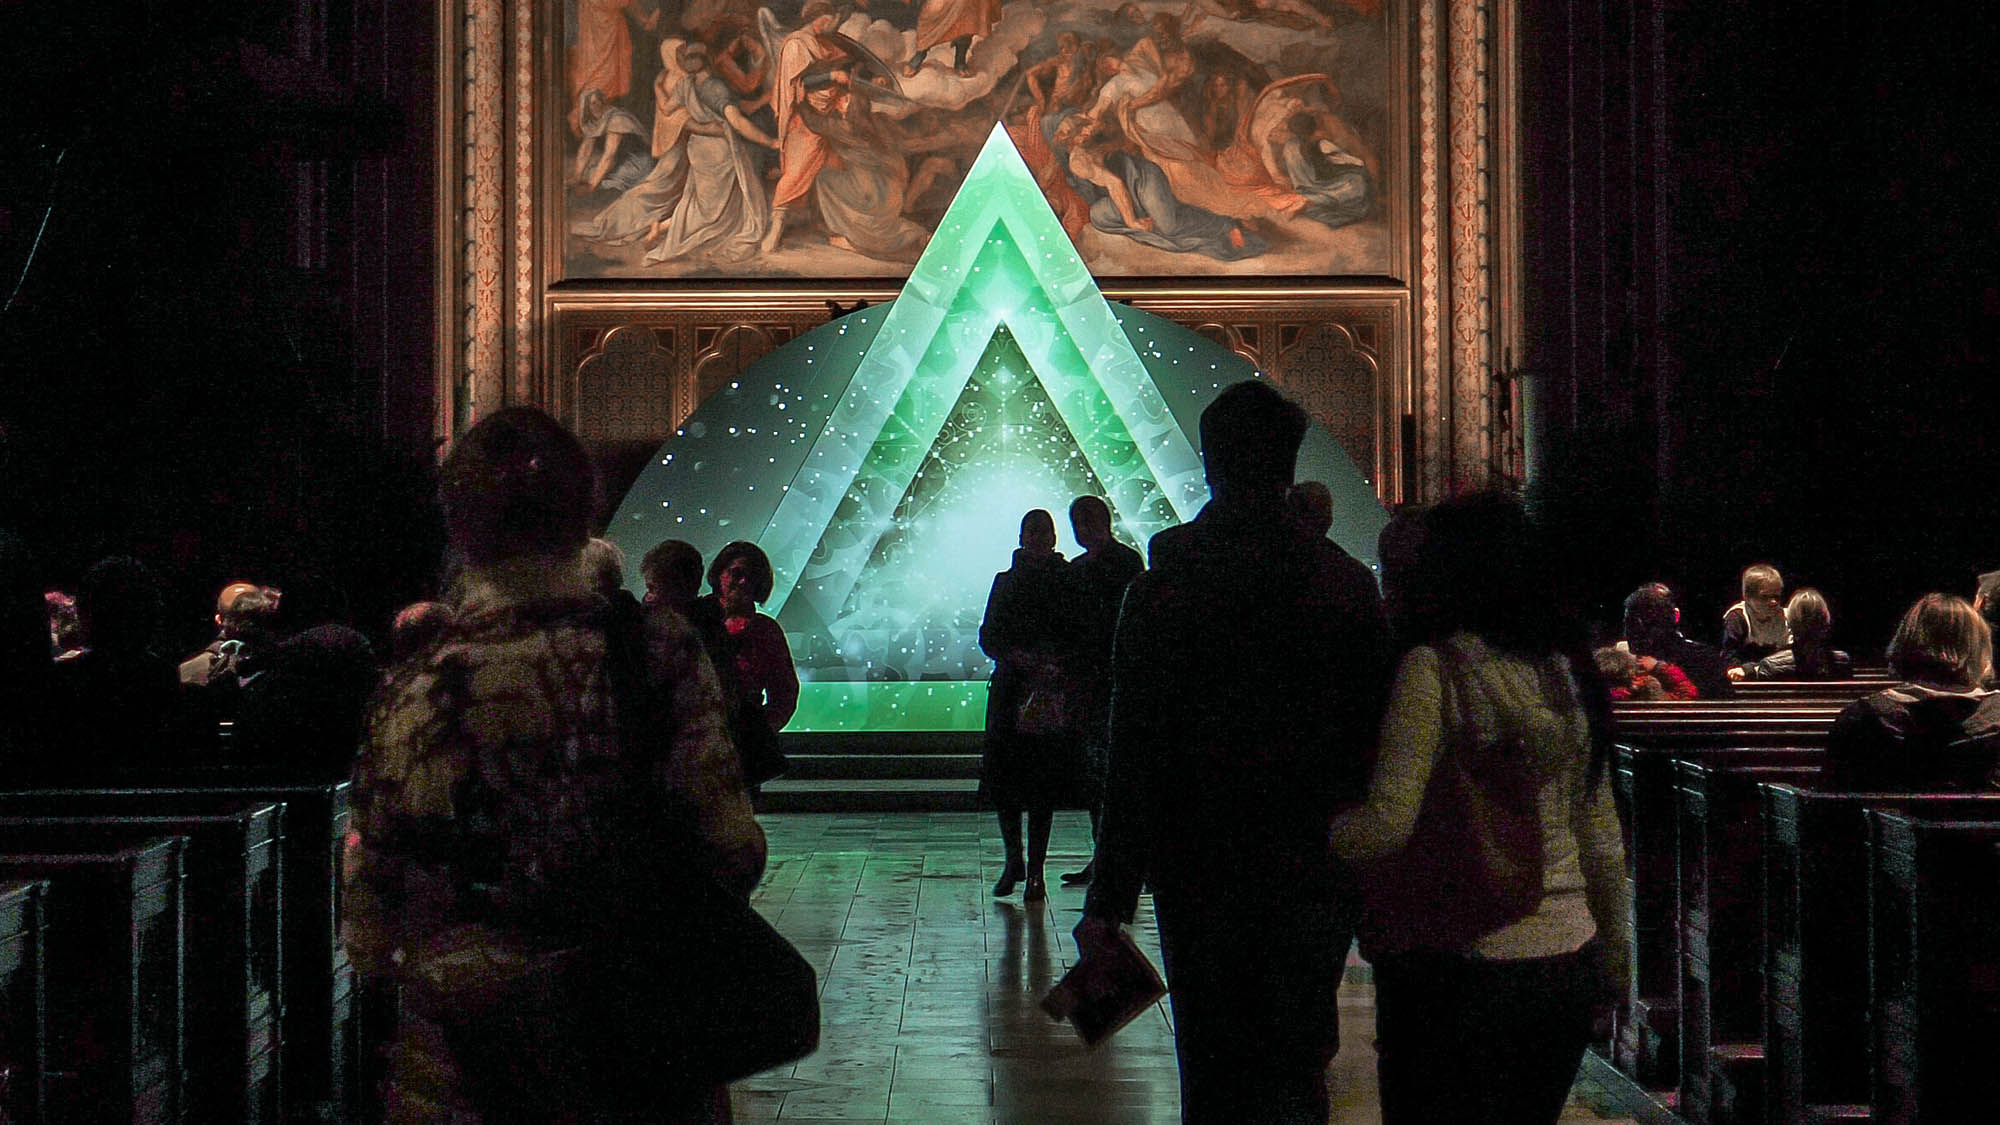 Image of a video art installation in a church with people. Triangle with geometric and ornamental design. Light art show in a church